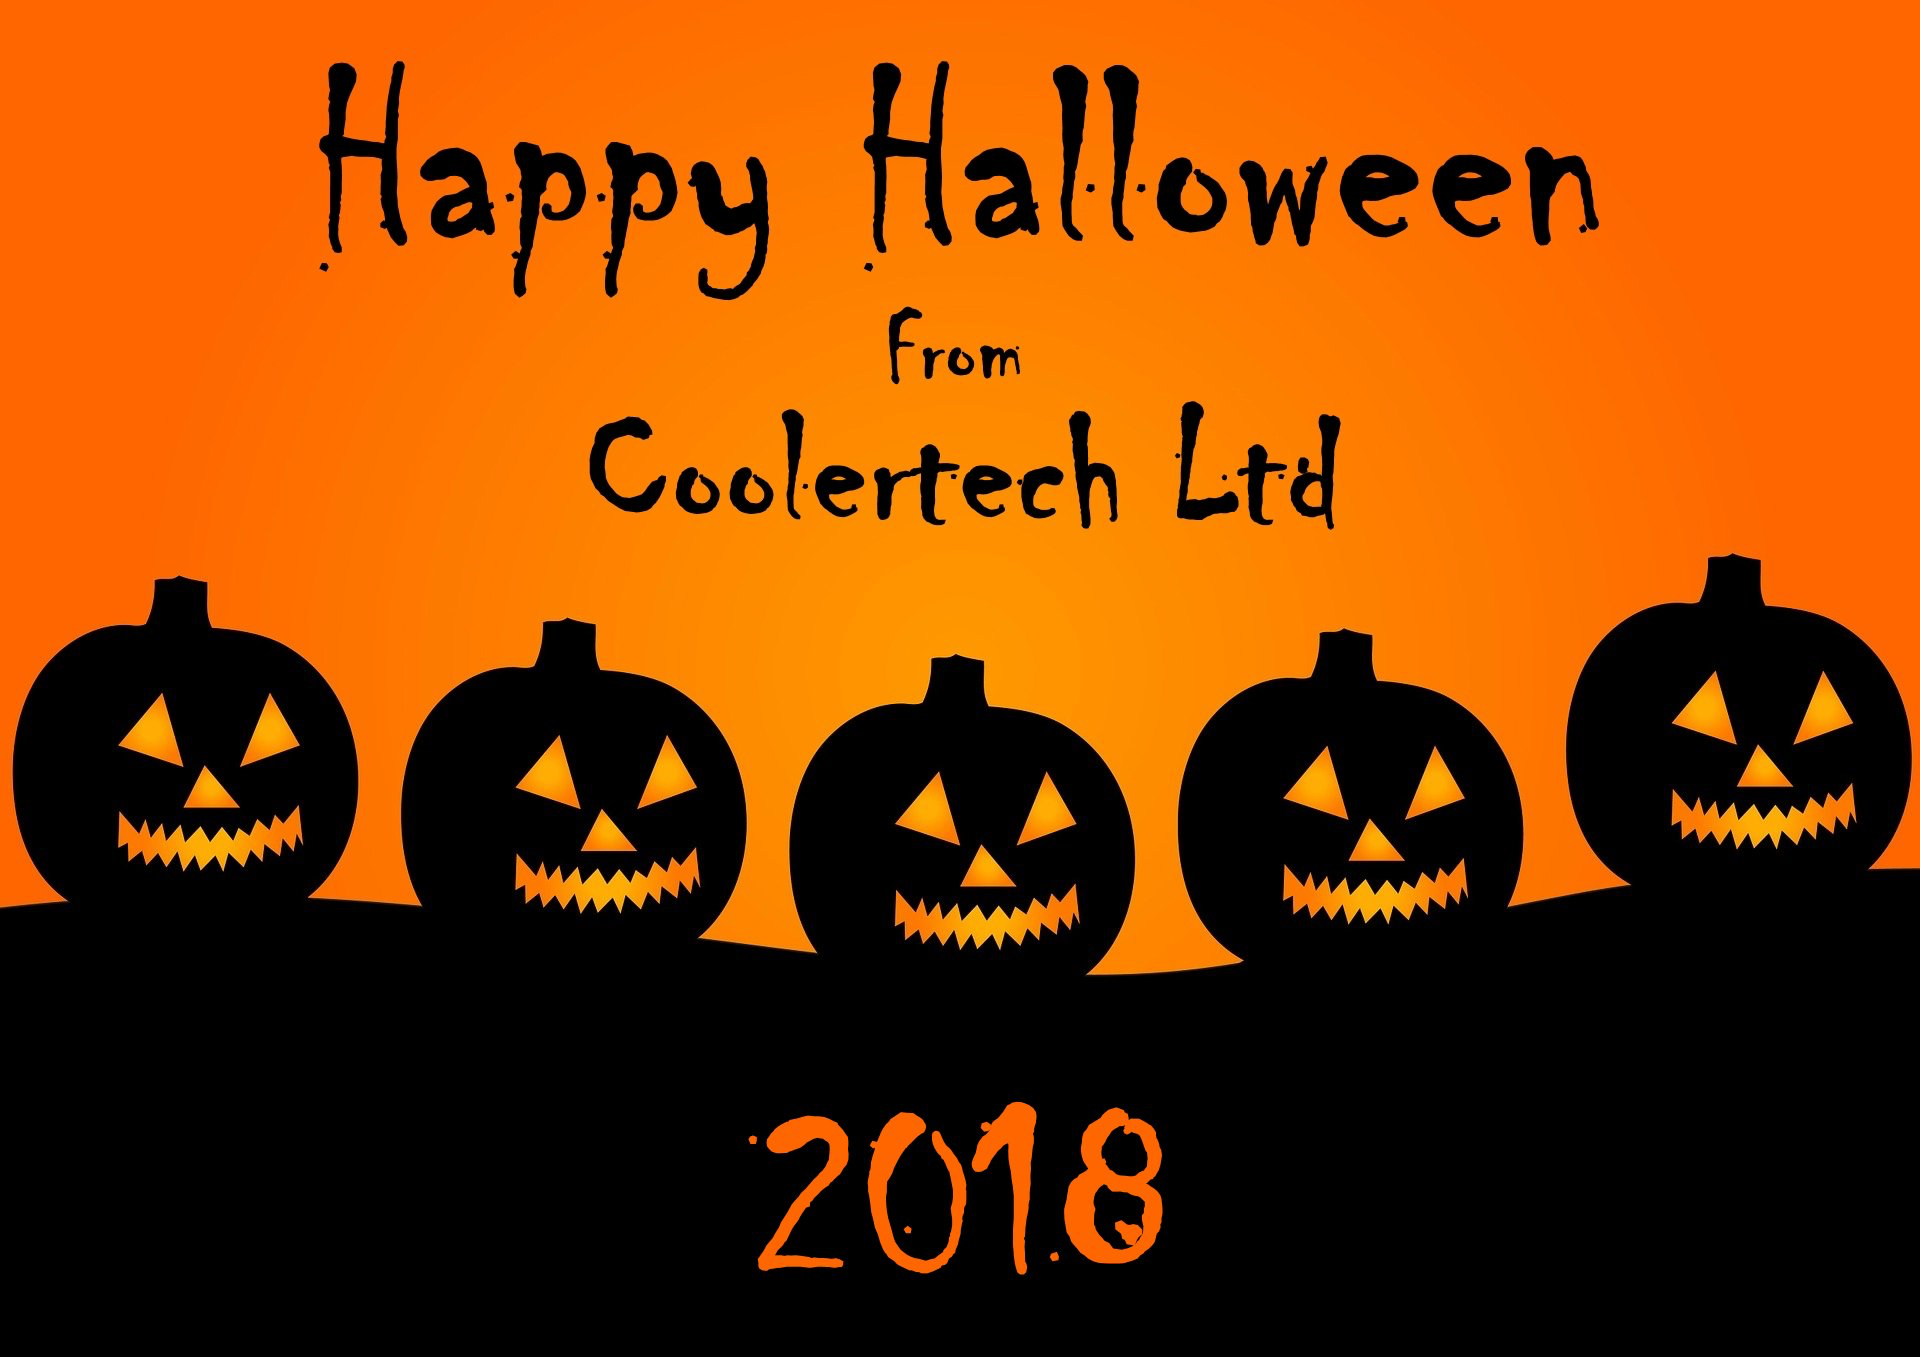 Happy Halloween Have A Great Day And A Fun But Frightfully Spooky Night Coolertechltd Refrigera Halloween Facts What Is Halloween Halloween Facts For Kids